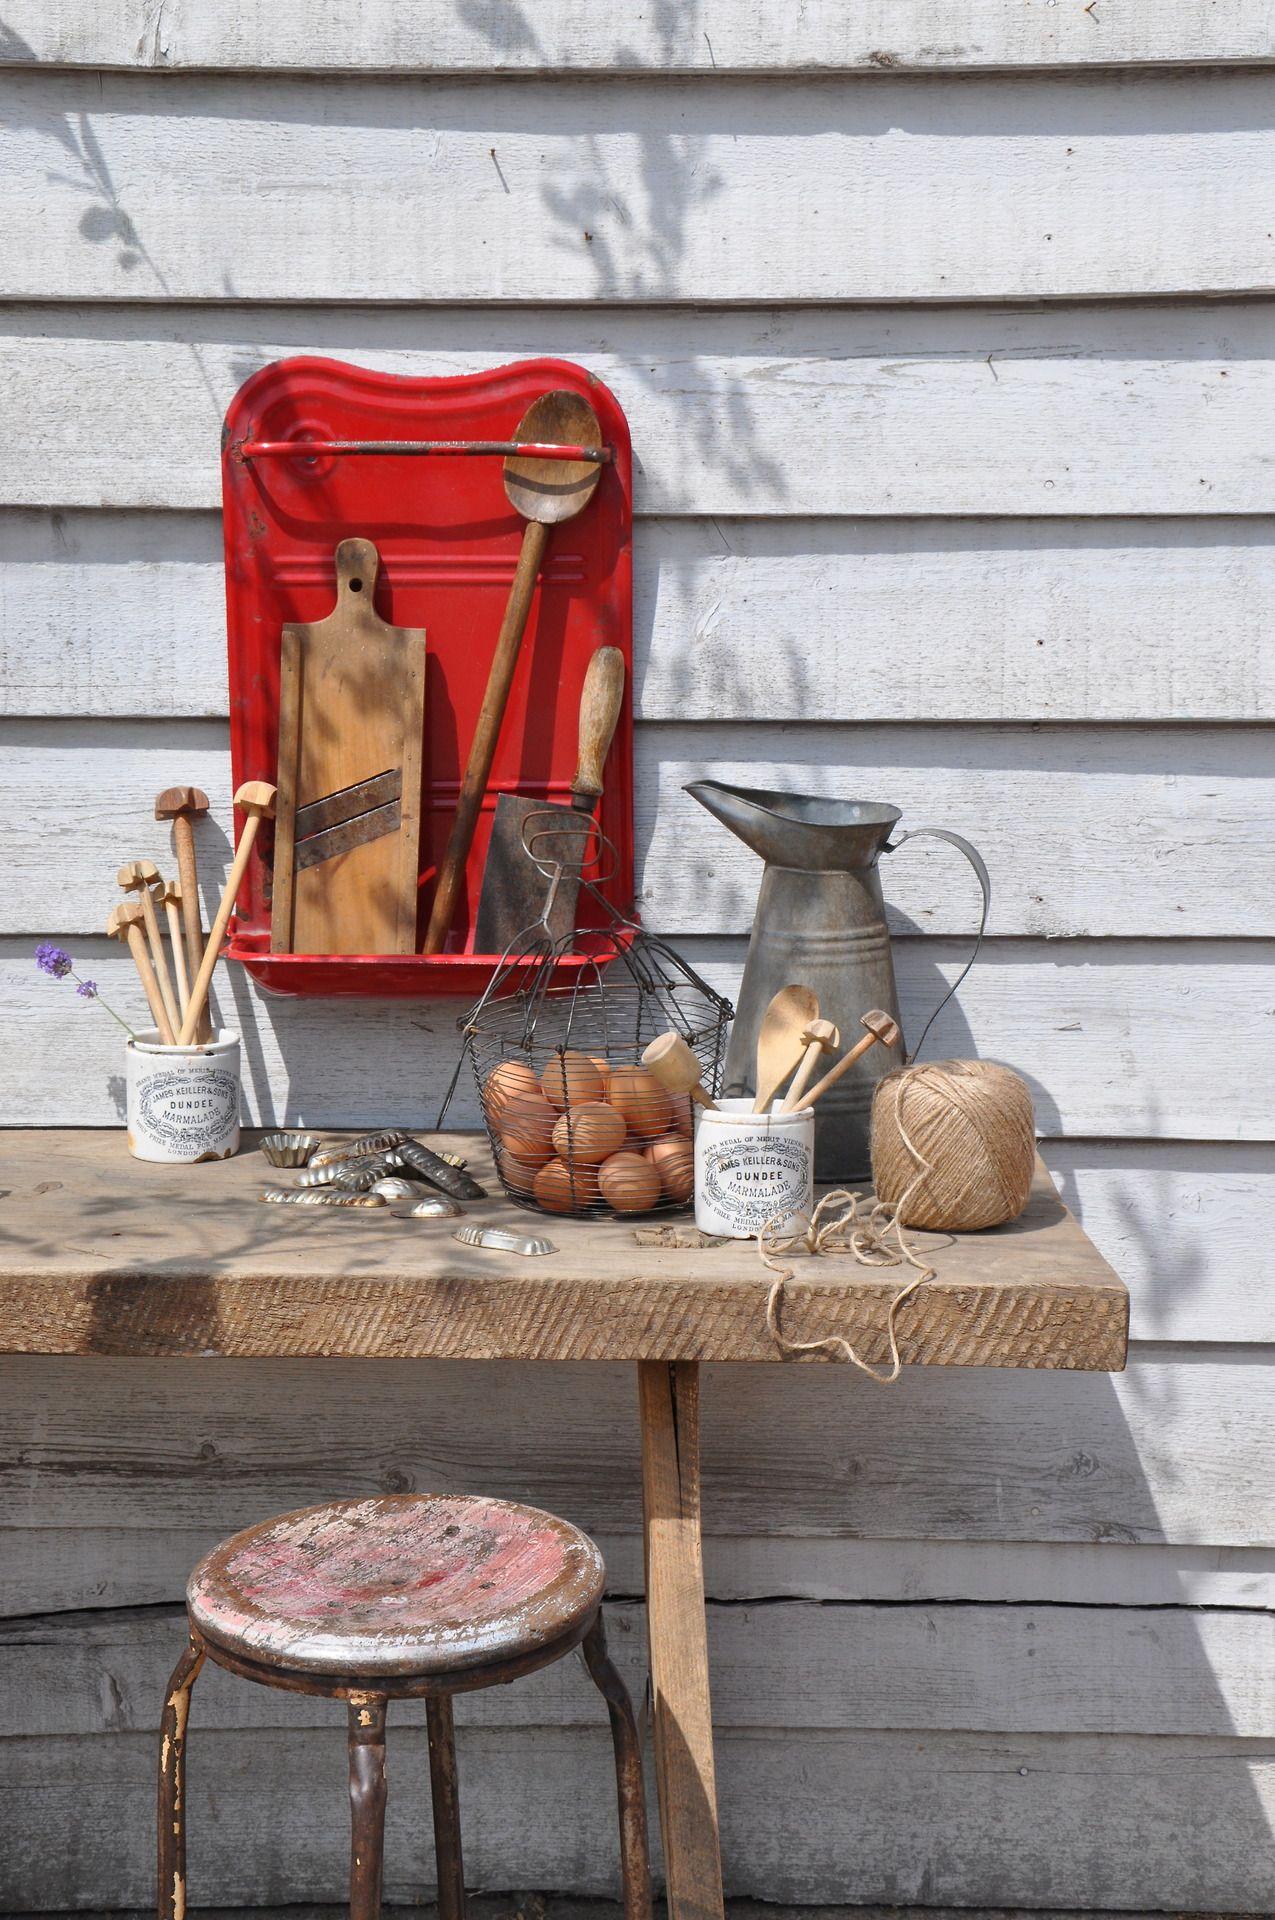 wonderful rustic simplicity!, re. via Home Barn blog http://www.homebarn.co/ #outdoor #kitchen #alfresco